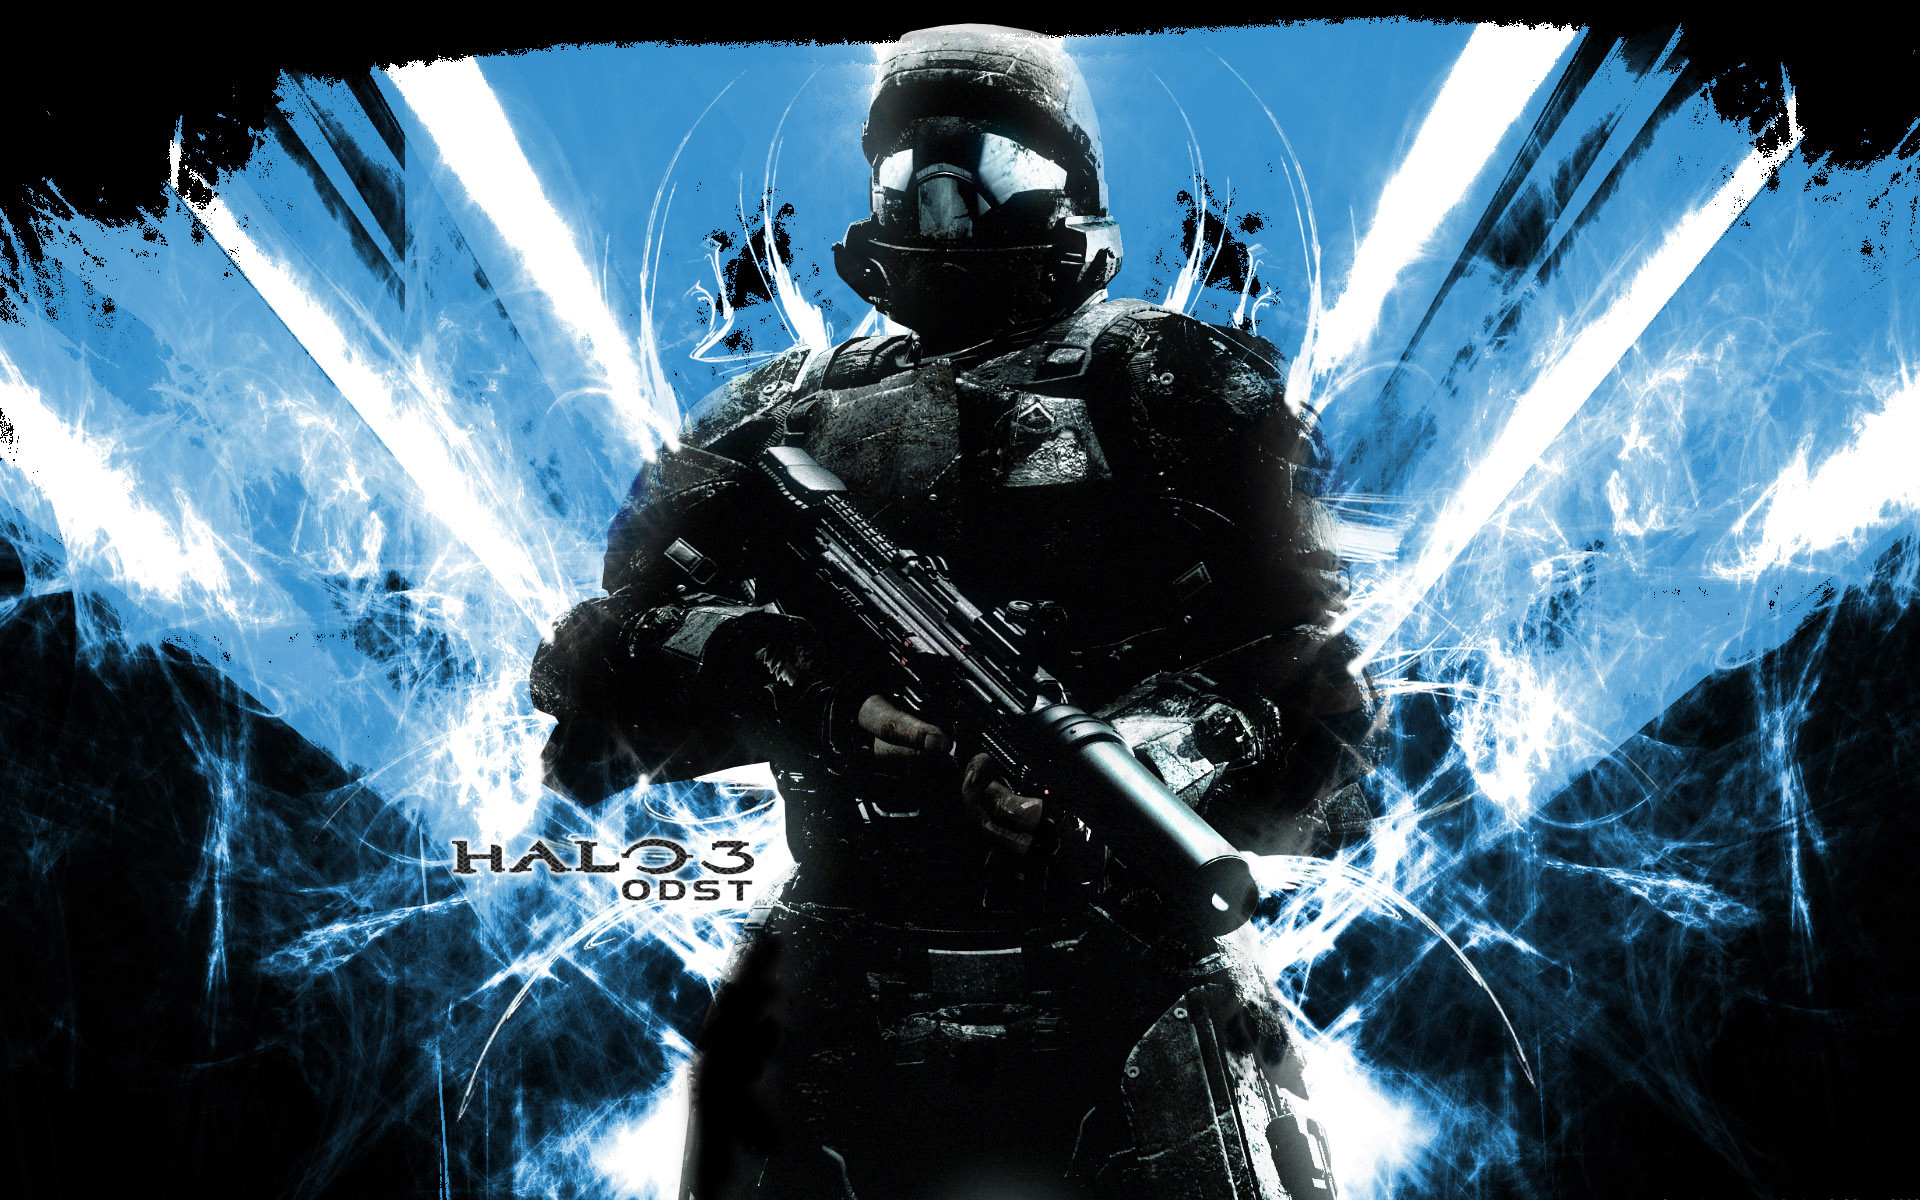 High Resolution Halo 3 Odst Wallpaper HD 10 Game Full Size … | Download  Wallpaper | Pinterest | Wallpaper